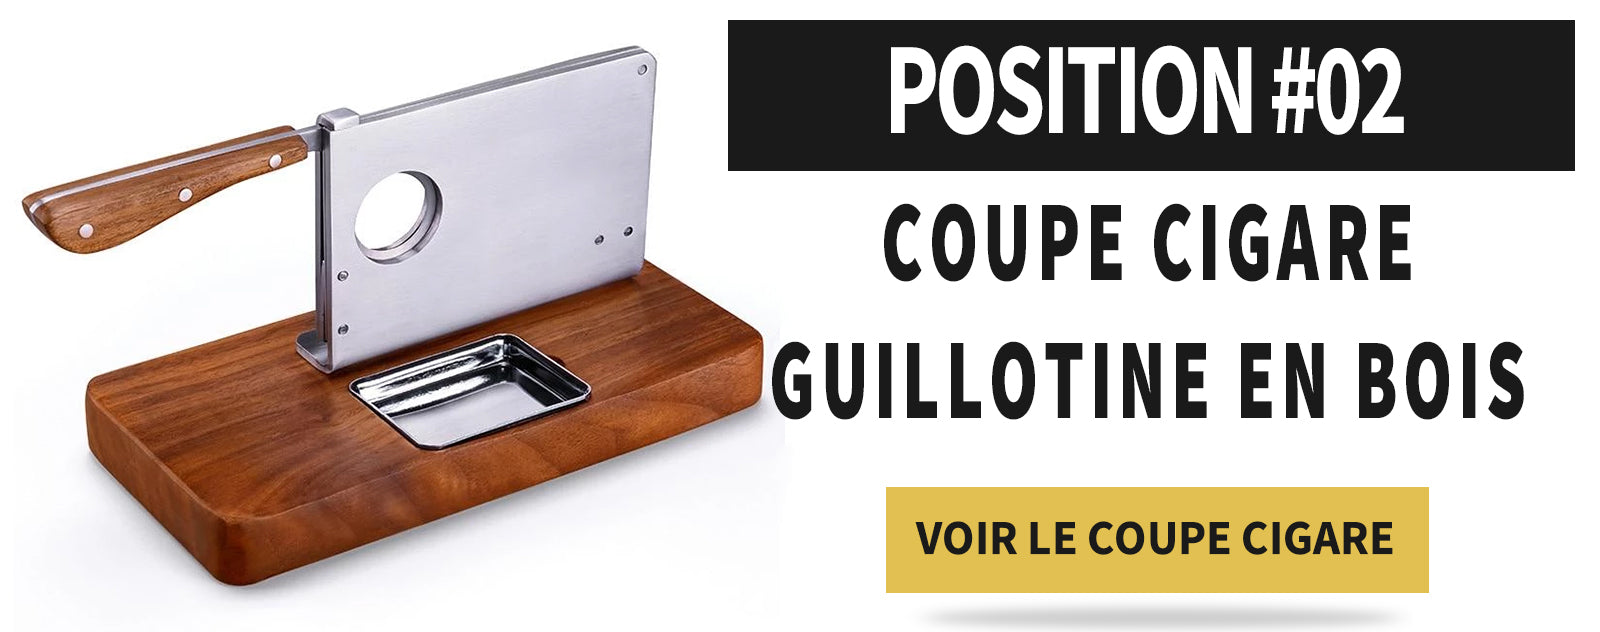 Coupe cigare guillotine en bois